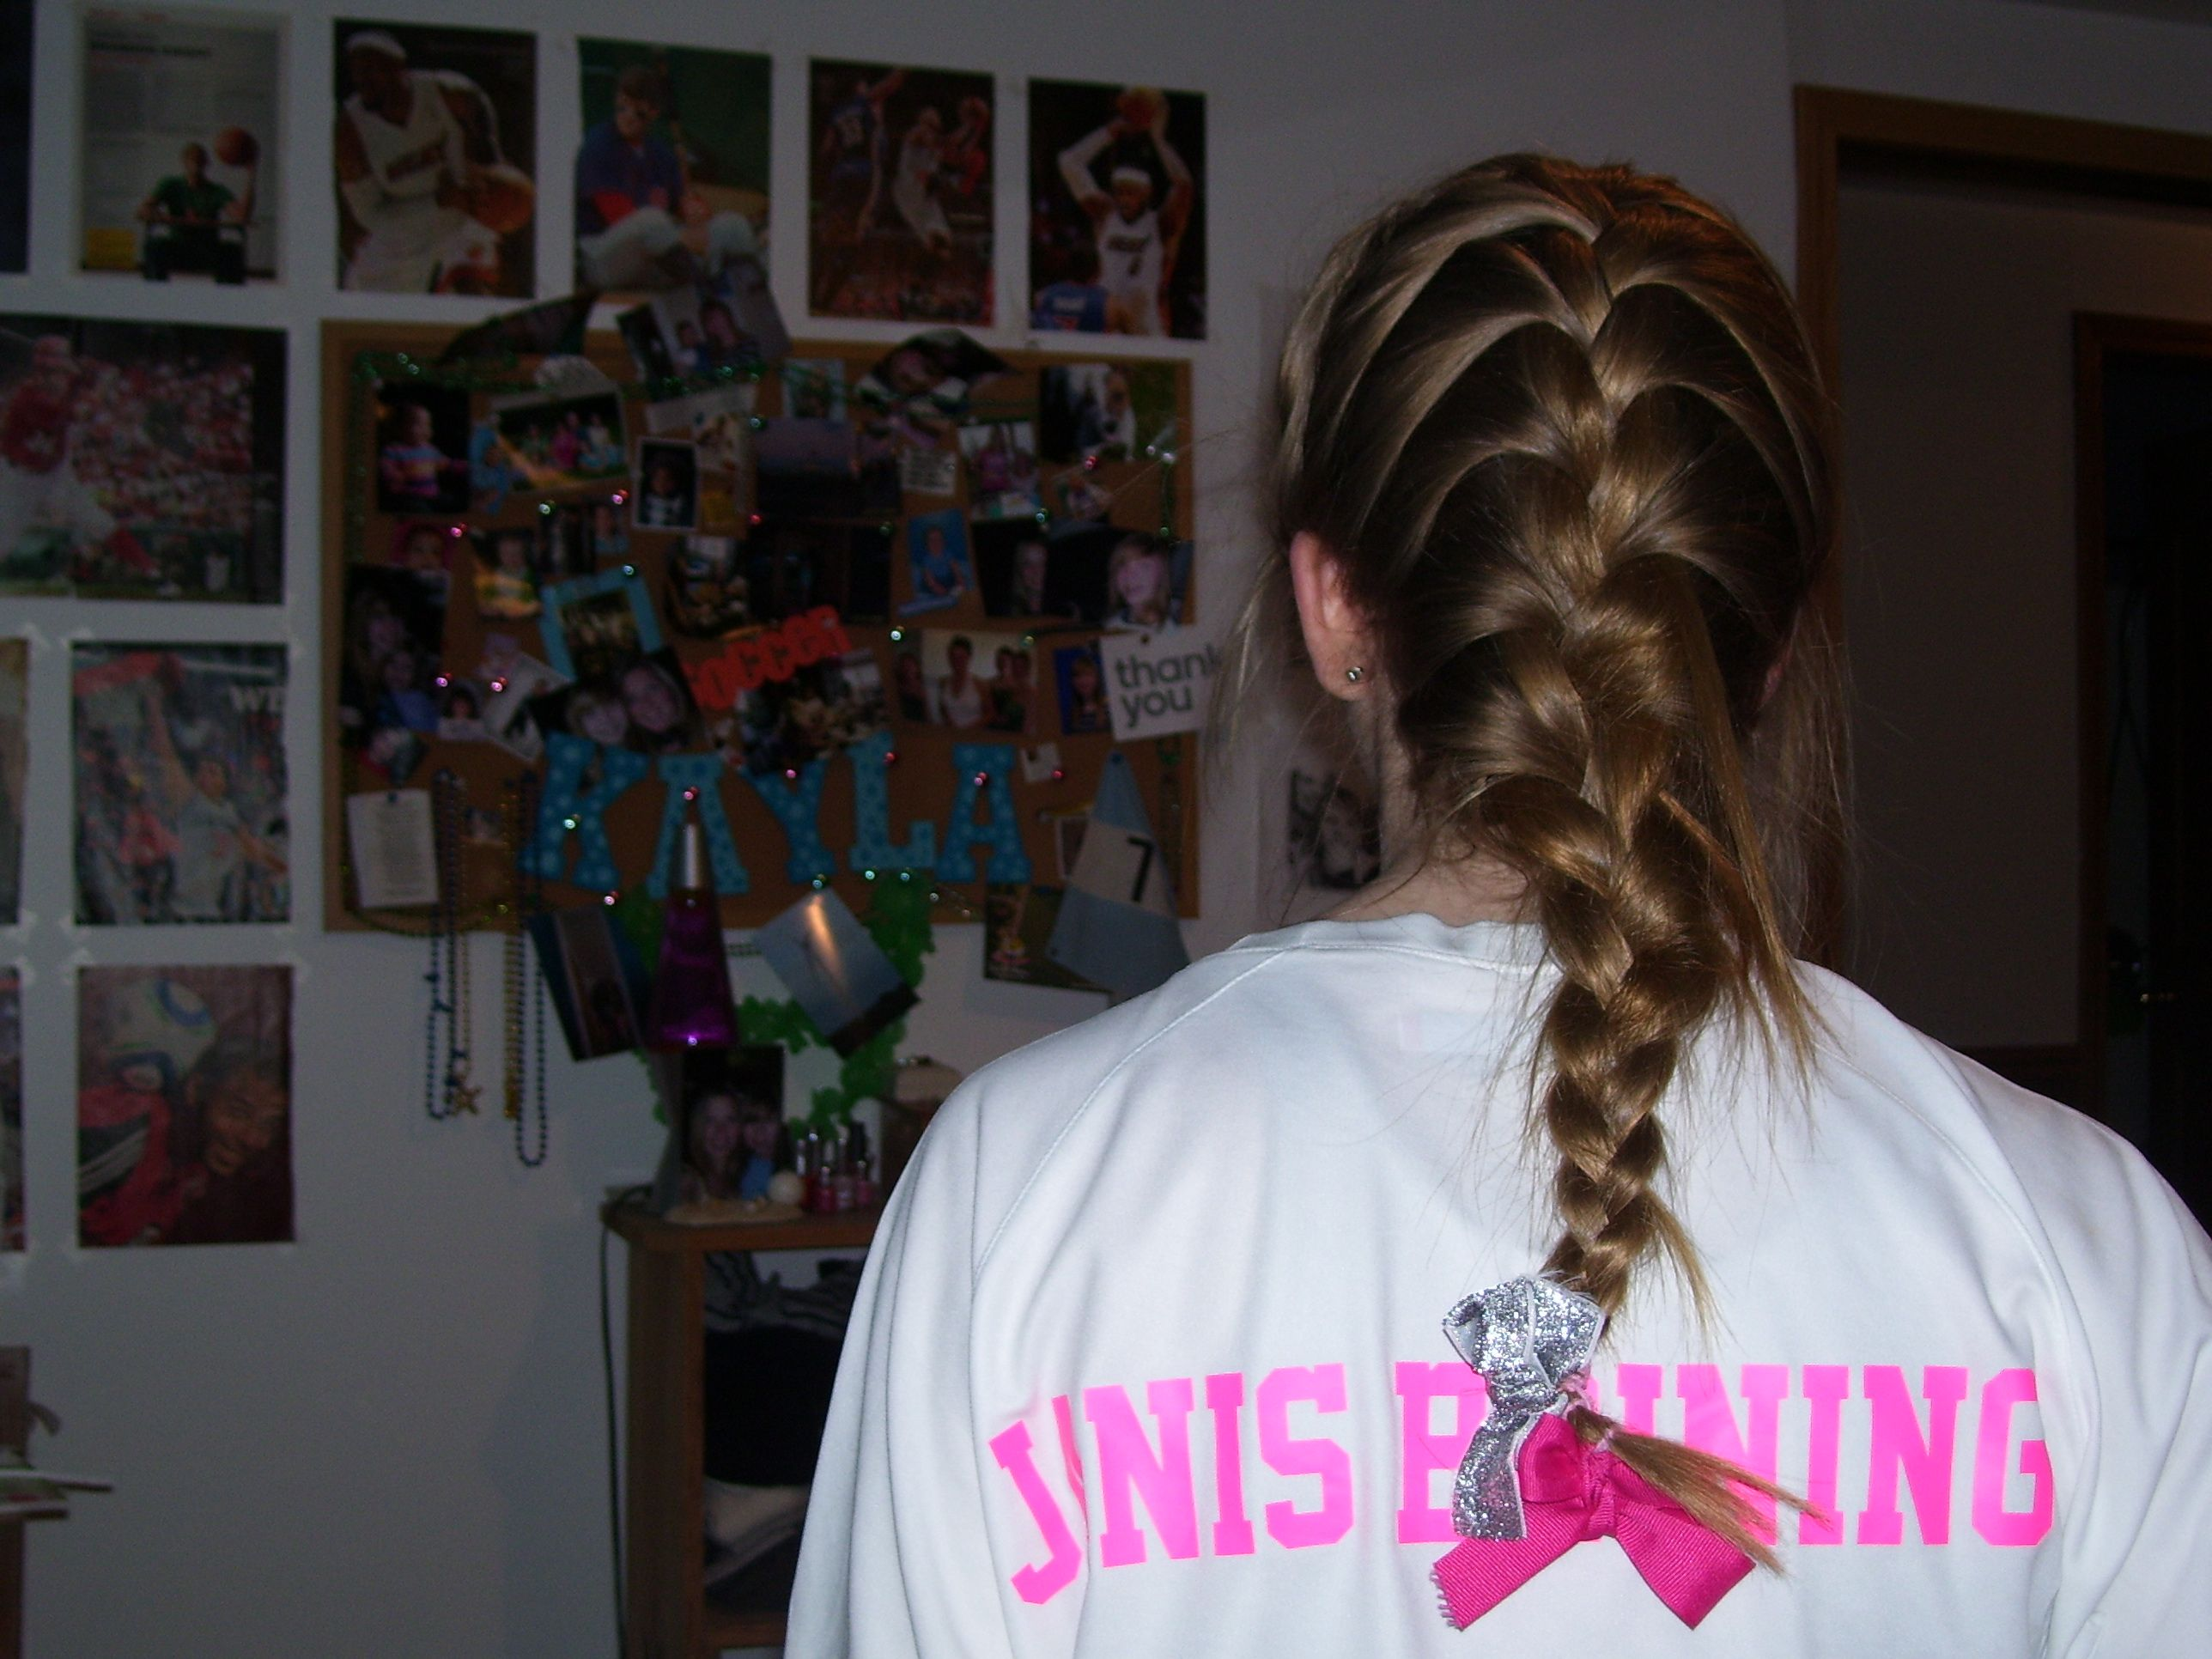 French braid with pink ribbons cancergame basketball pink